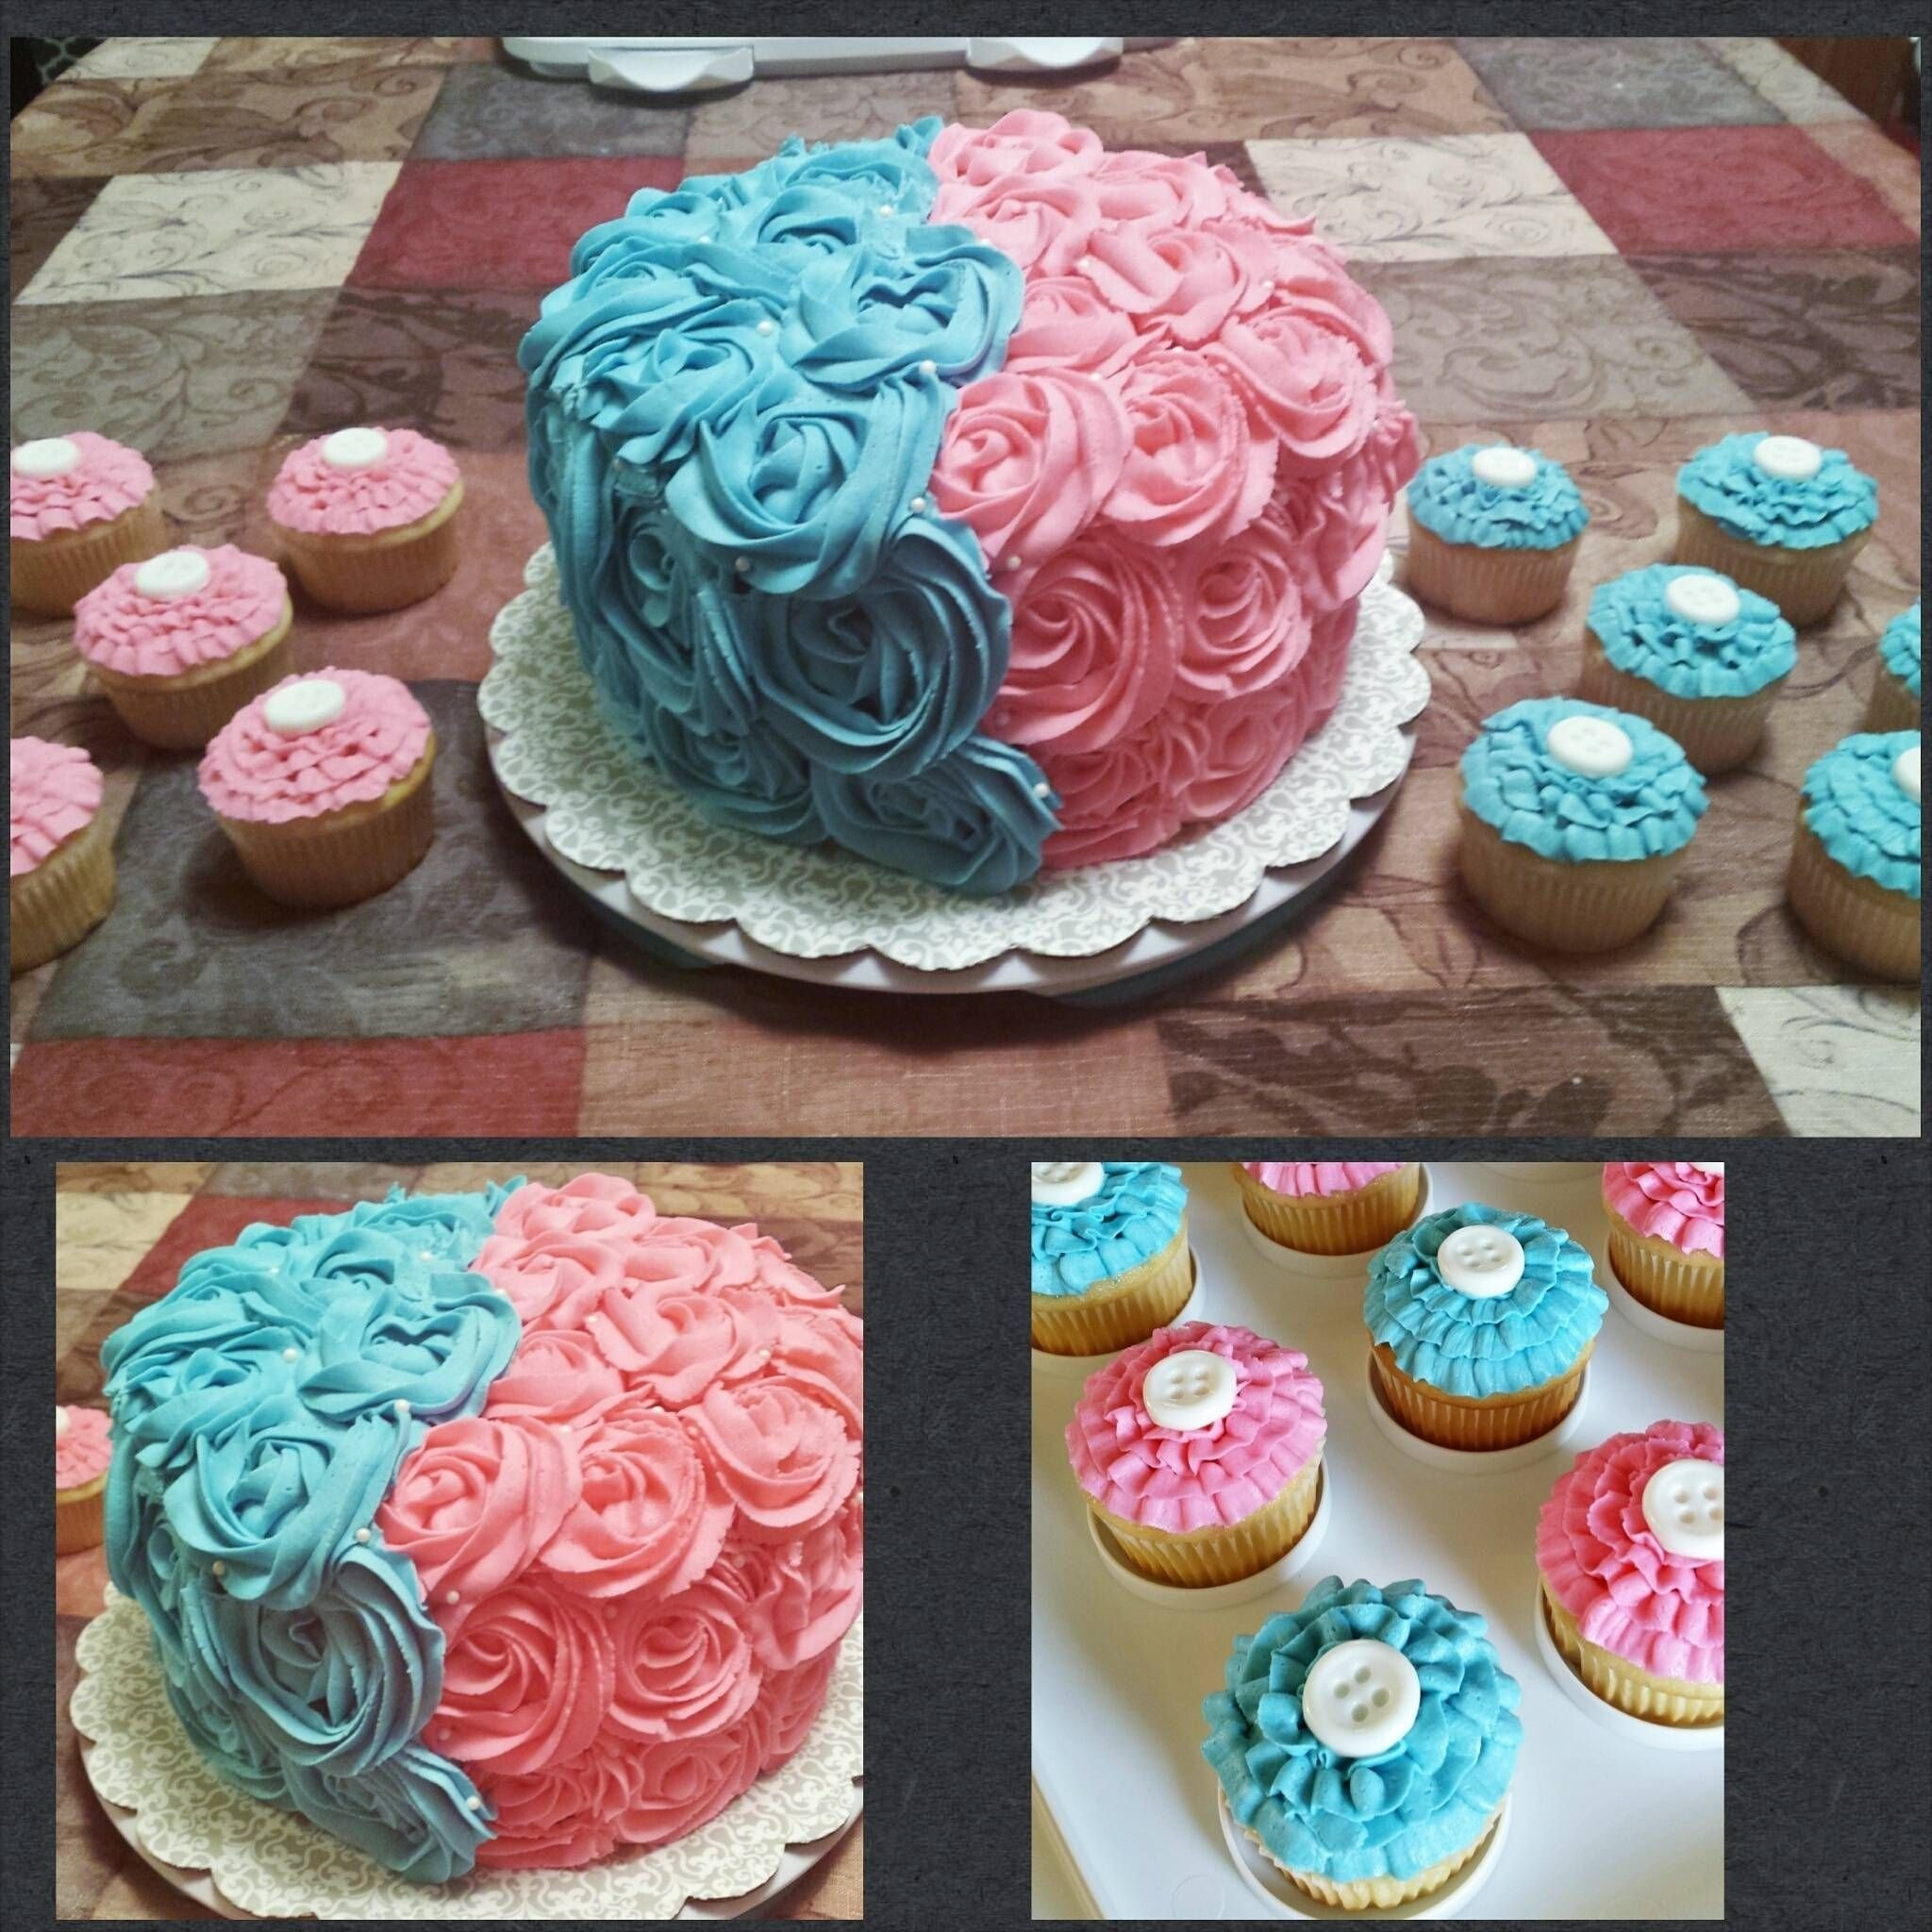 10 Stylish Gender Reveal Party Cake Ideas i made the cake and cupcakes for a baby gender reveal party the 2020